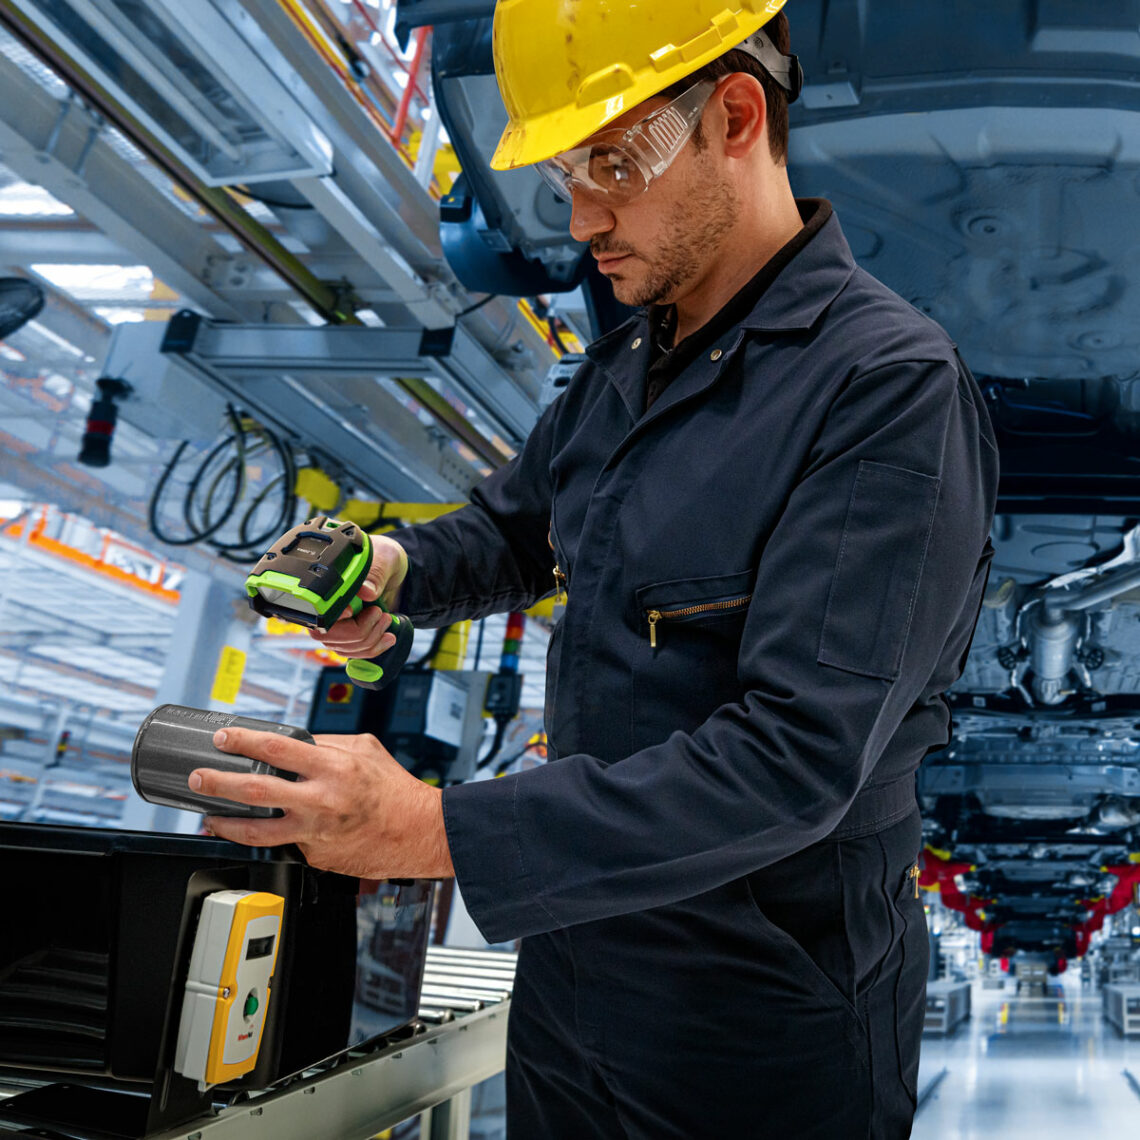 Worker Scanning Part for Cold Storage with a 3600 Series Ultra-Rugged Barcode Scanner